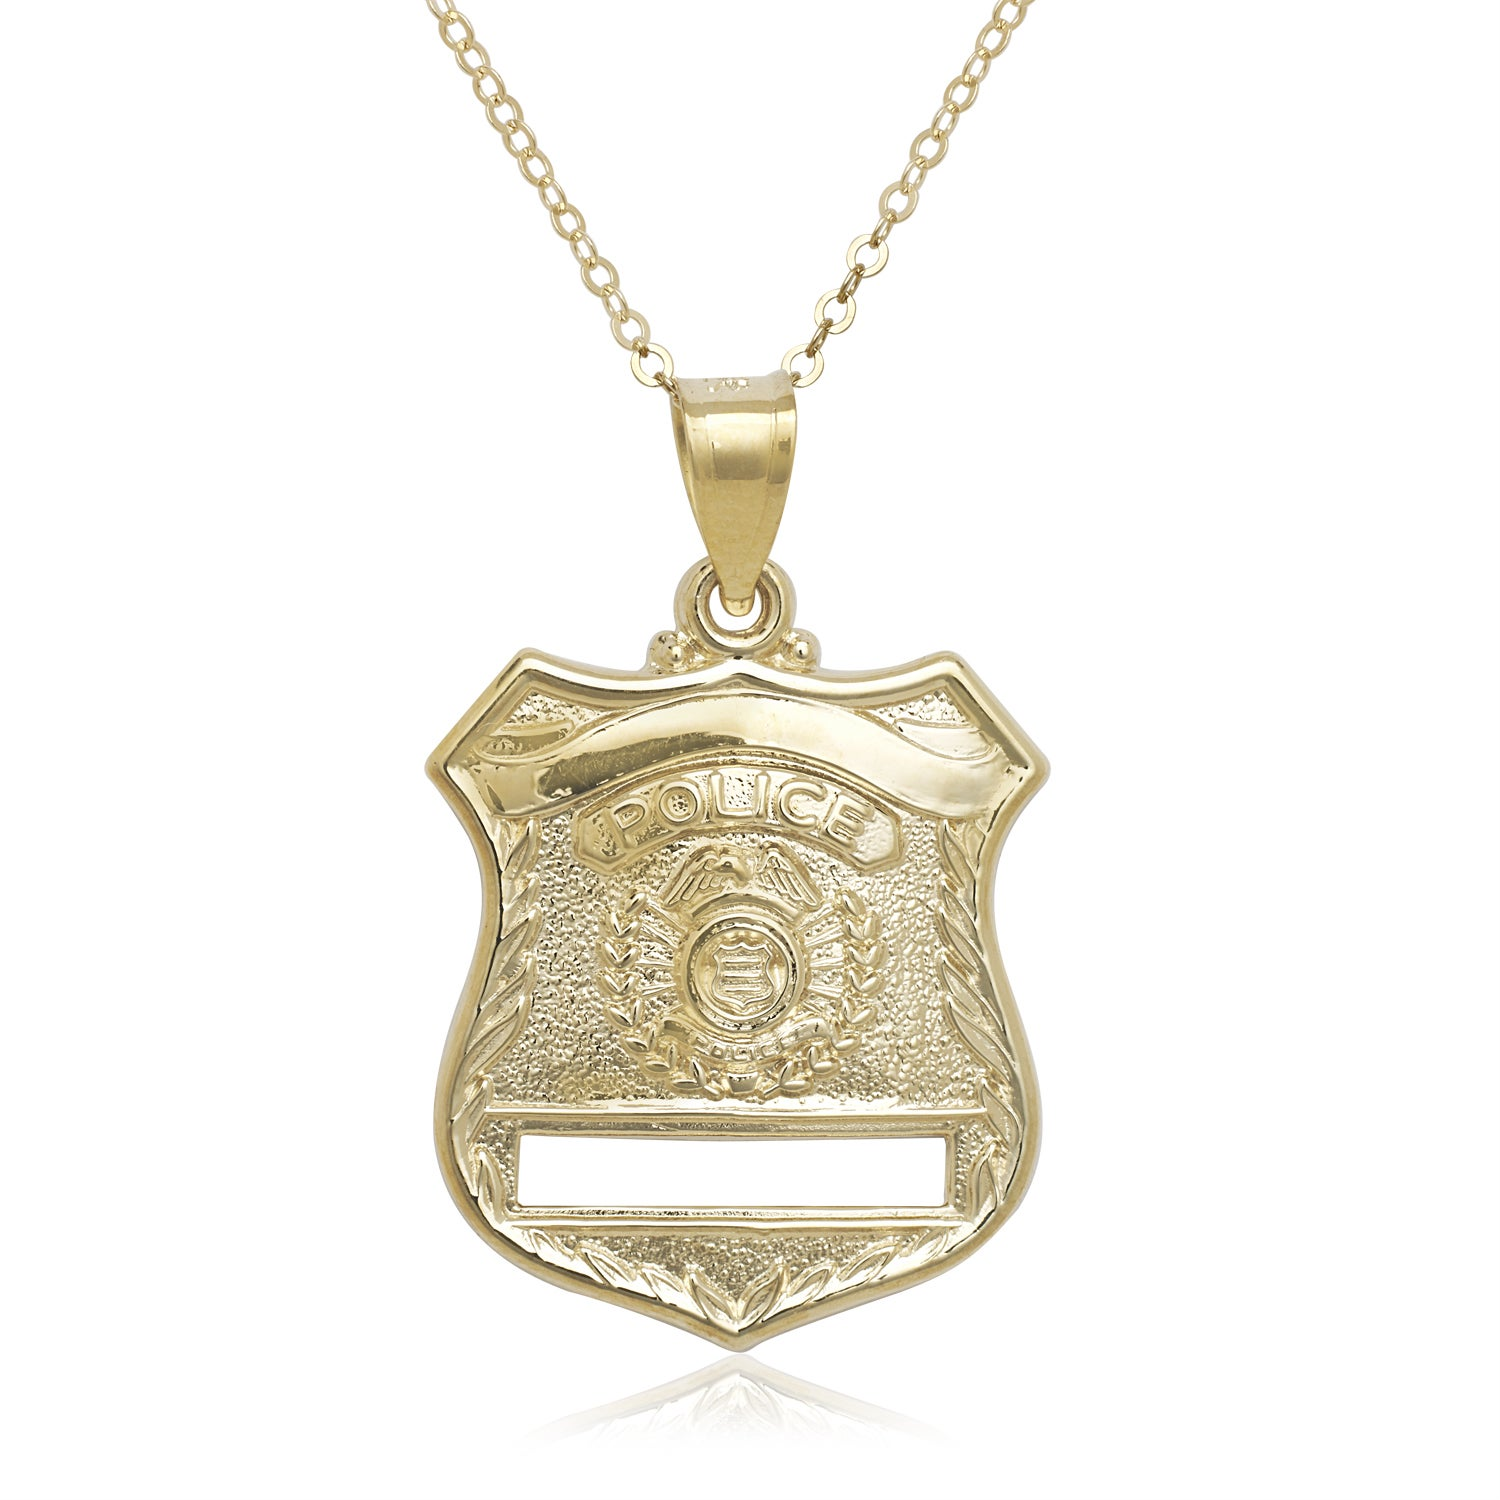 14k yellow gold 16 inch police badge pendant necklace ebay 14k yellow gold 16 inch police badge pendant necklace mozeypictures Choice Image